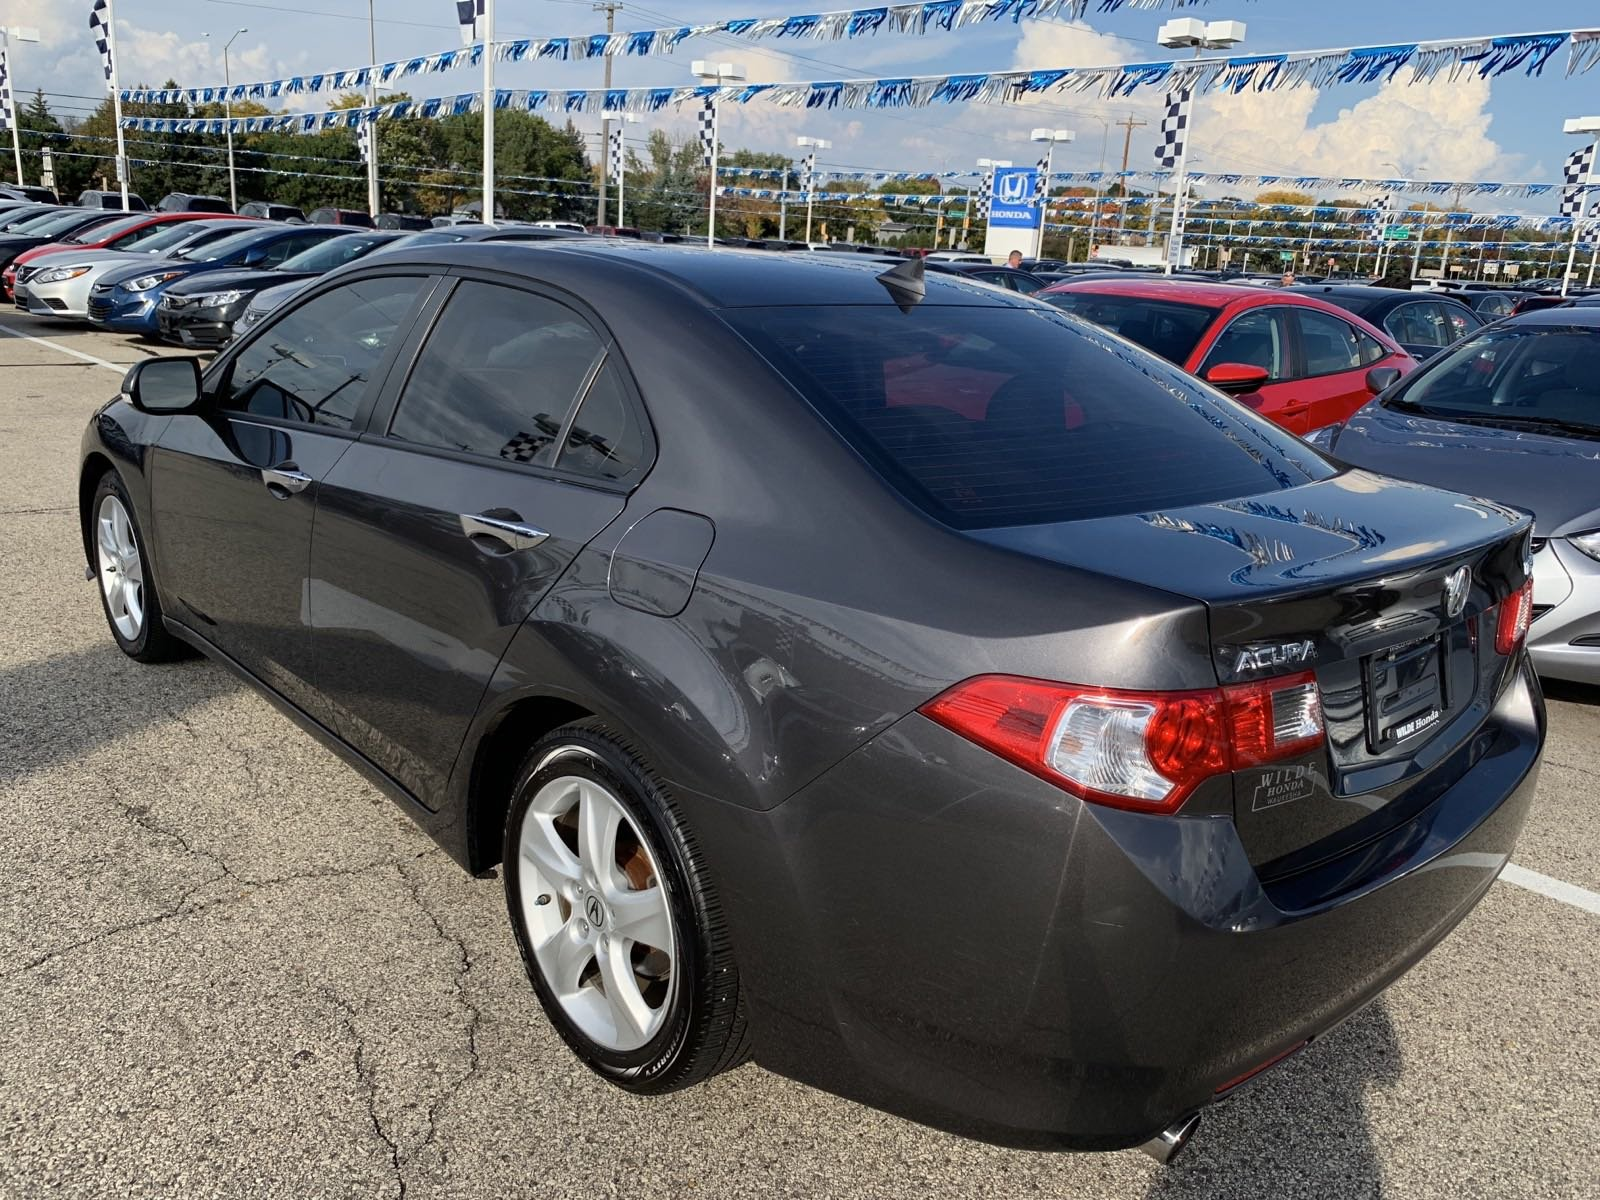 Pre Owned 2010 Acura TSX 4DR SDN L4 AT 4dr Car in